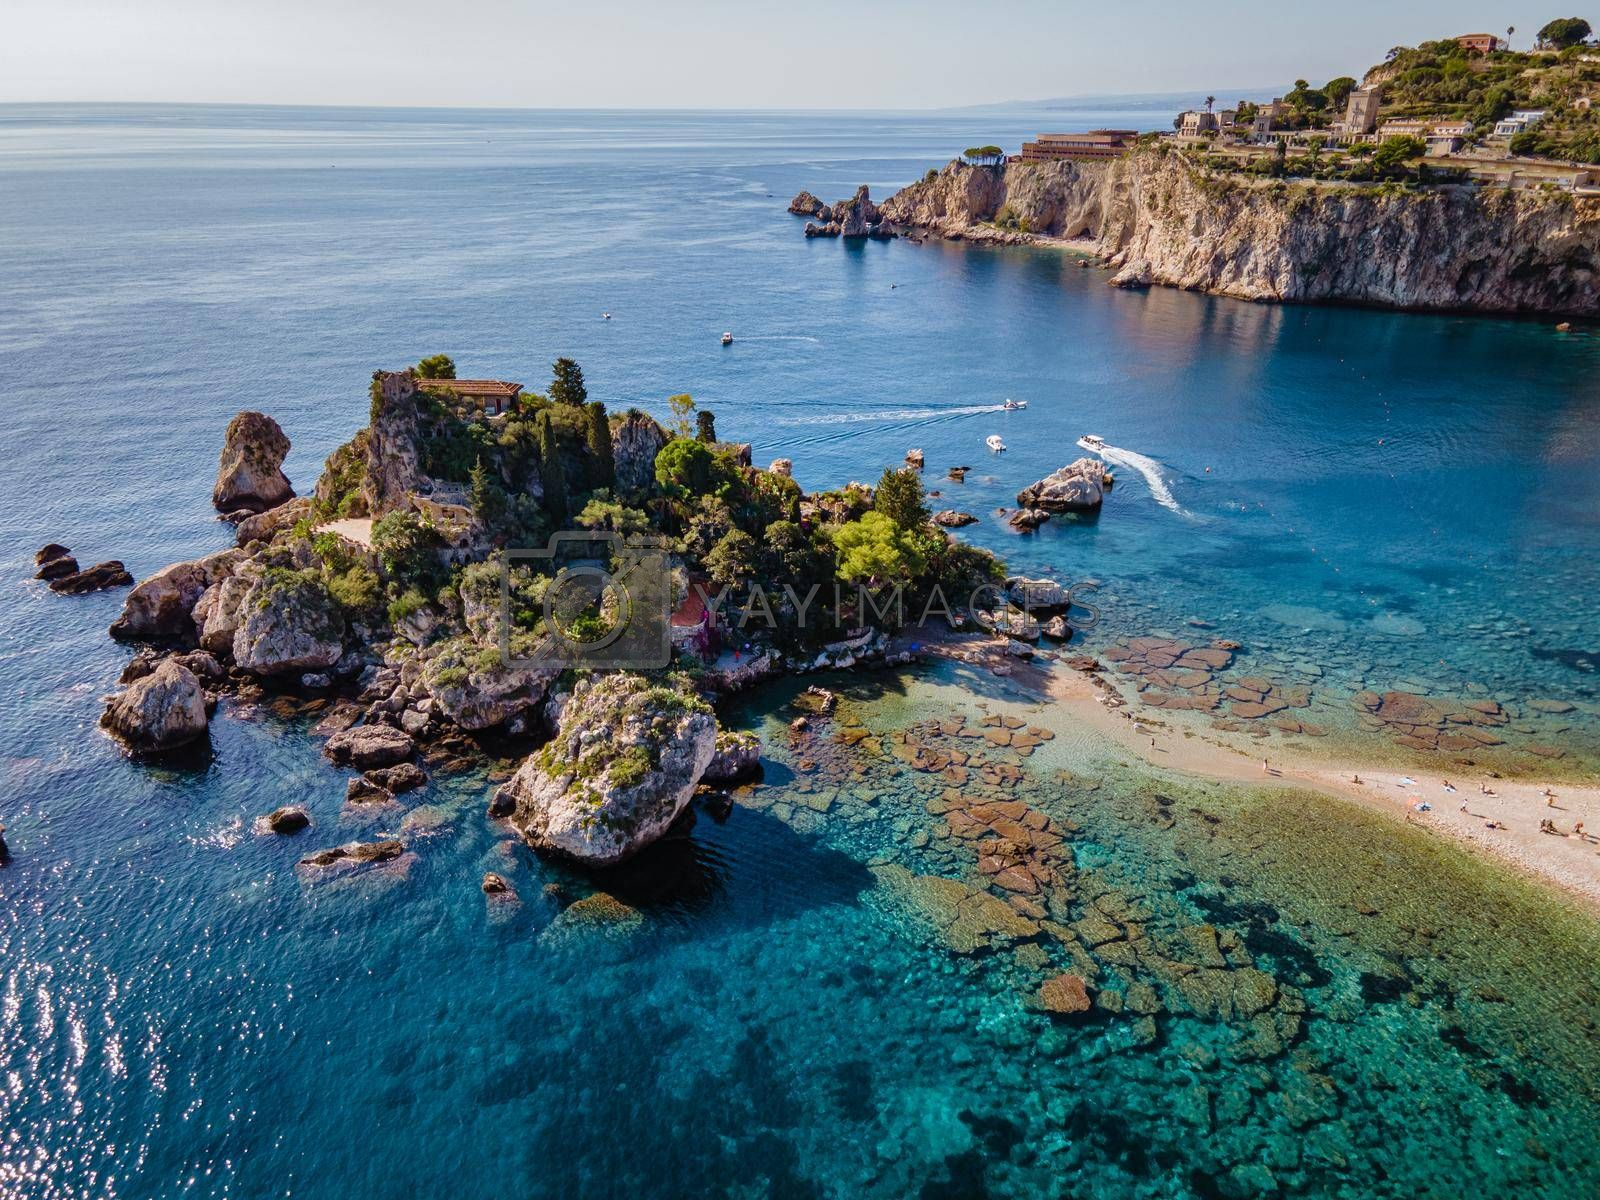 Isola Bella at Taormina, Sicily, Aerial view of the island and Isola Bella beach and blue ocean water in Taormina, Sicily, Italy Europe